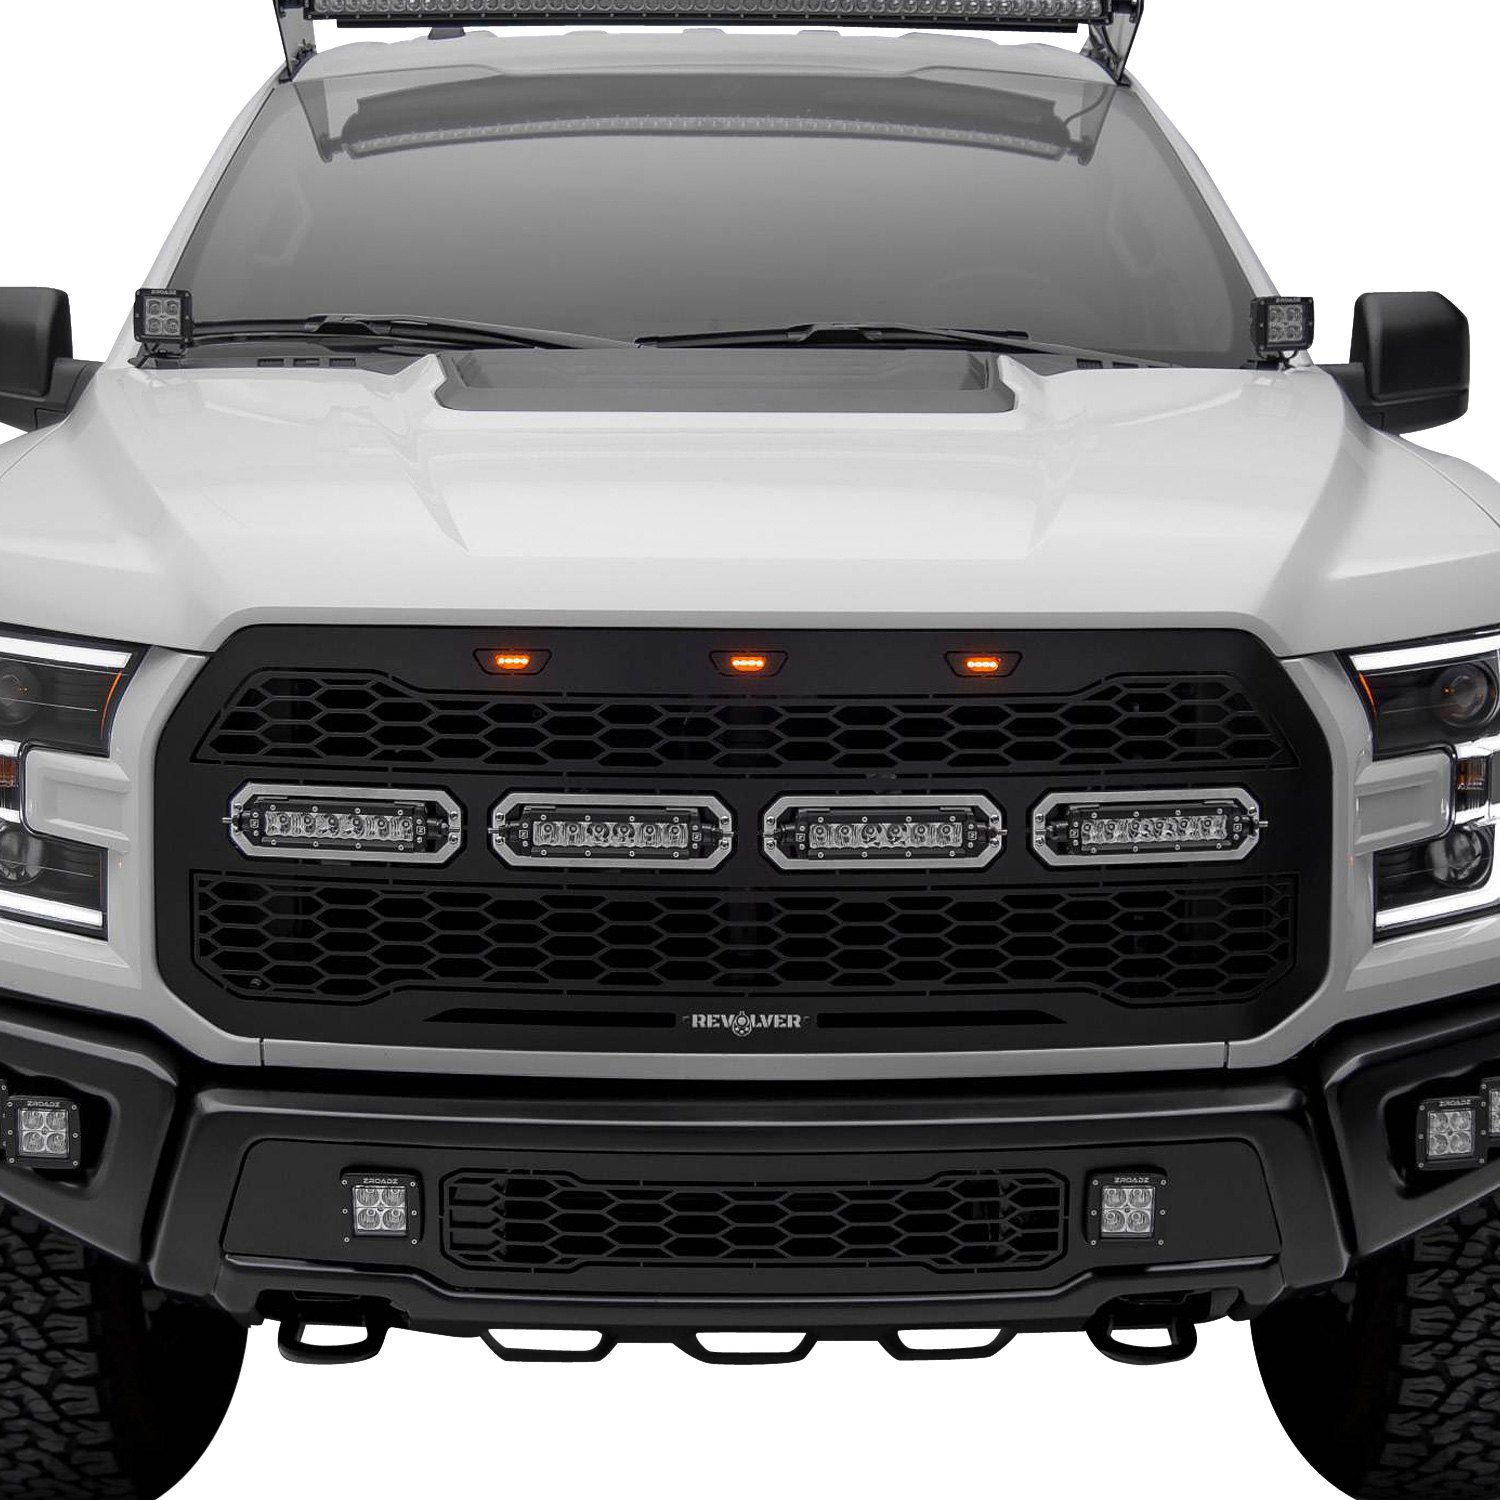 T-Rex® 6525661 - 1-Pc Revolver Series Black CNC Machined Bumper Grille with 2 x 3